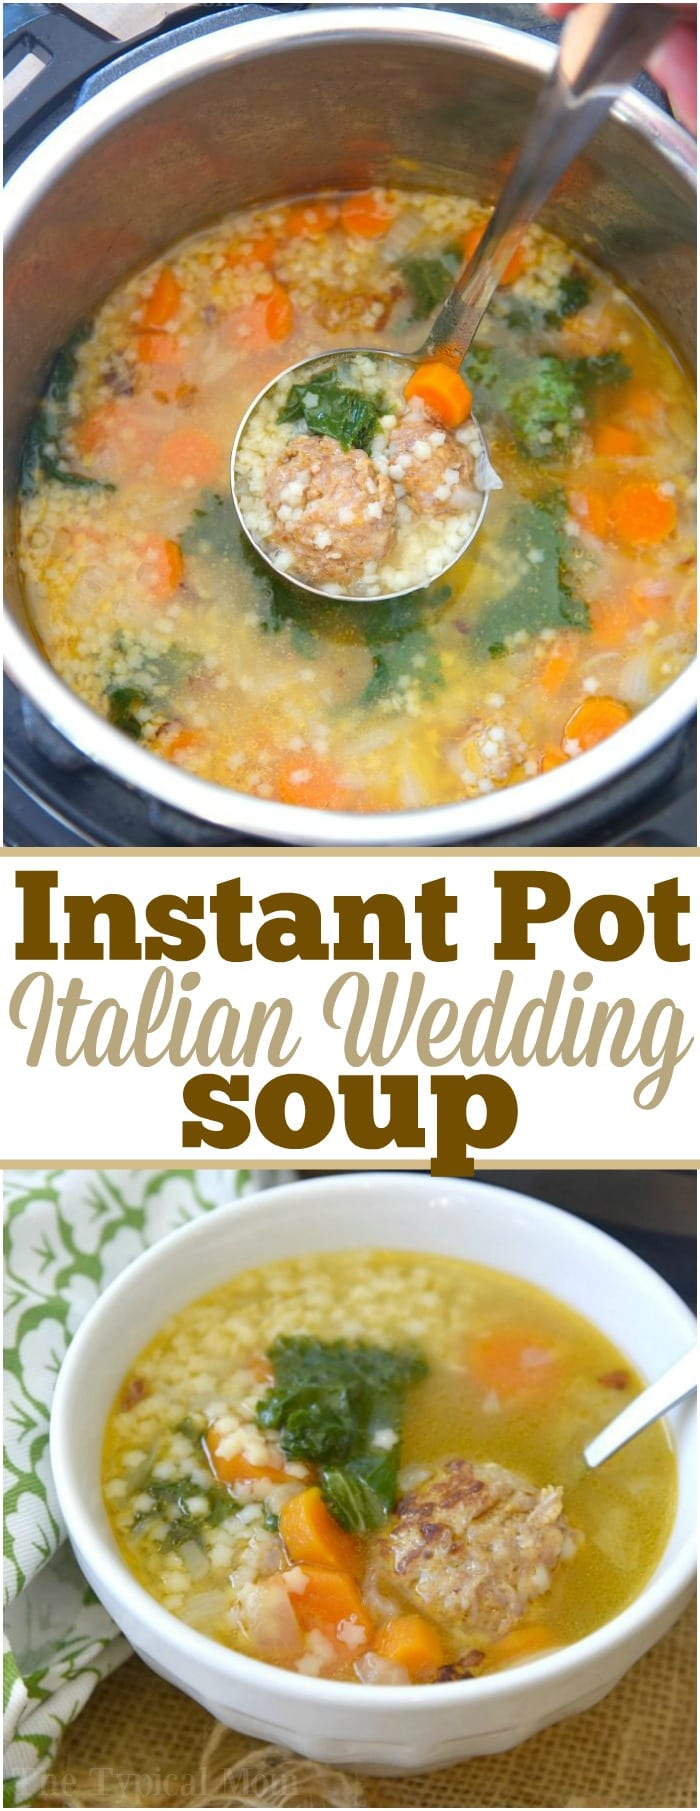 This easy Instant Pot Italian Wedding Soup is perfect year round and a delicious dinner idea. Simple ingredients yet packed with flavor it's a healthy pressure cooker soup that everyone loves! Load it up with vegetables and meatballs and you are sure to add this to your meal planning menu rotations. #instantpot #pressurecooker #italian #wedding #soup #healthy #vegetable